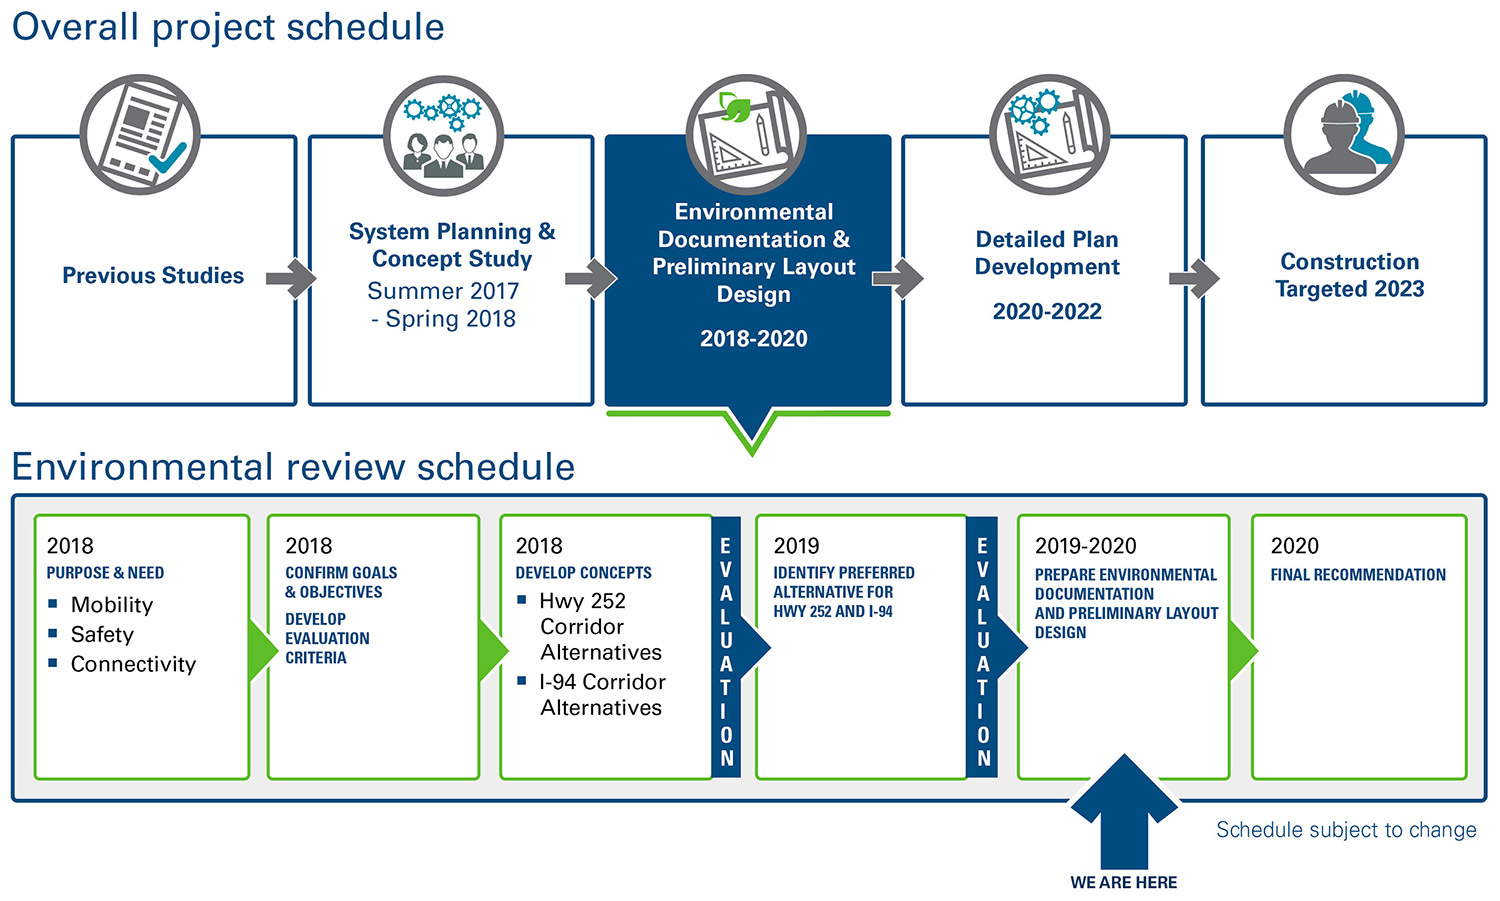 Highway 252/I-94 project schedule. Overall project schedule includes: Previous studies, system planning and concept study from summer 2017 to spring 2018, environmental documentation and preliminary layout design from 2018 to 2020, detailed plan development from 2020 to 2022 and construction targeted 2023. Environmental review schedule includes: purpose and need (mobility, safety and connectivity), confirm goals and objectives, develop evaluation criteria and develop concepts (Highway 252 corridor alternatives and I-94 corridor alternatives) in 2018. Identify preferred alternative for highway 252 and I-94 in 2019. Prepare environmental documentation and preliminary layout design from 2019 to 2020 and final recommendation in 2020.